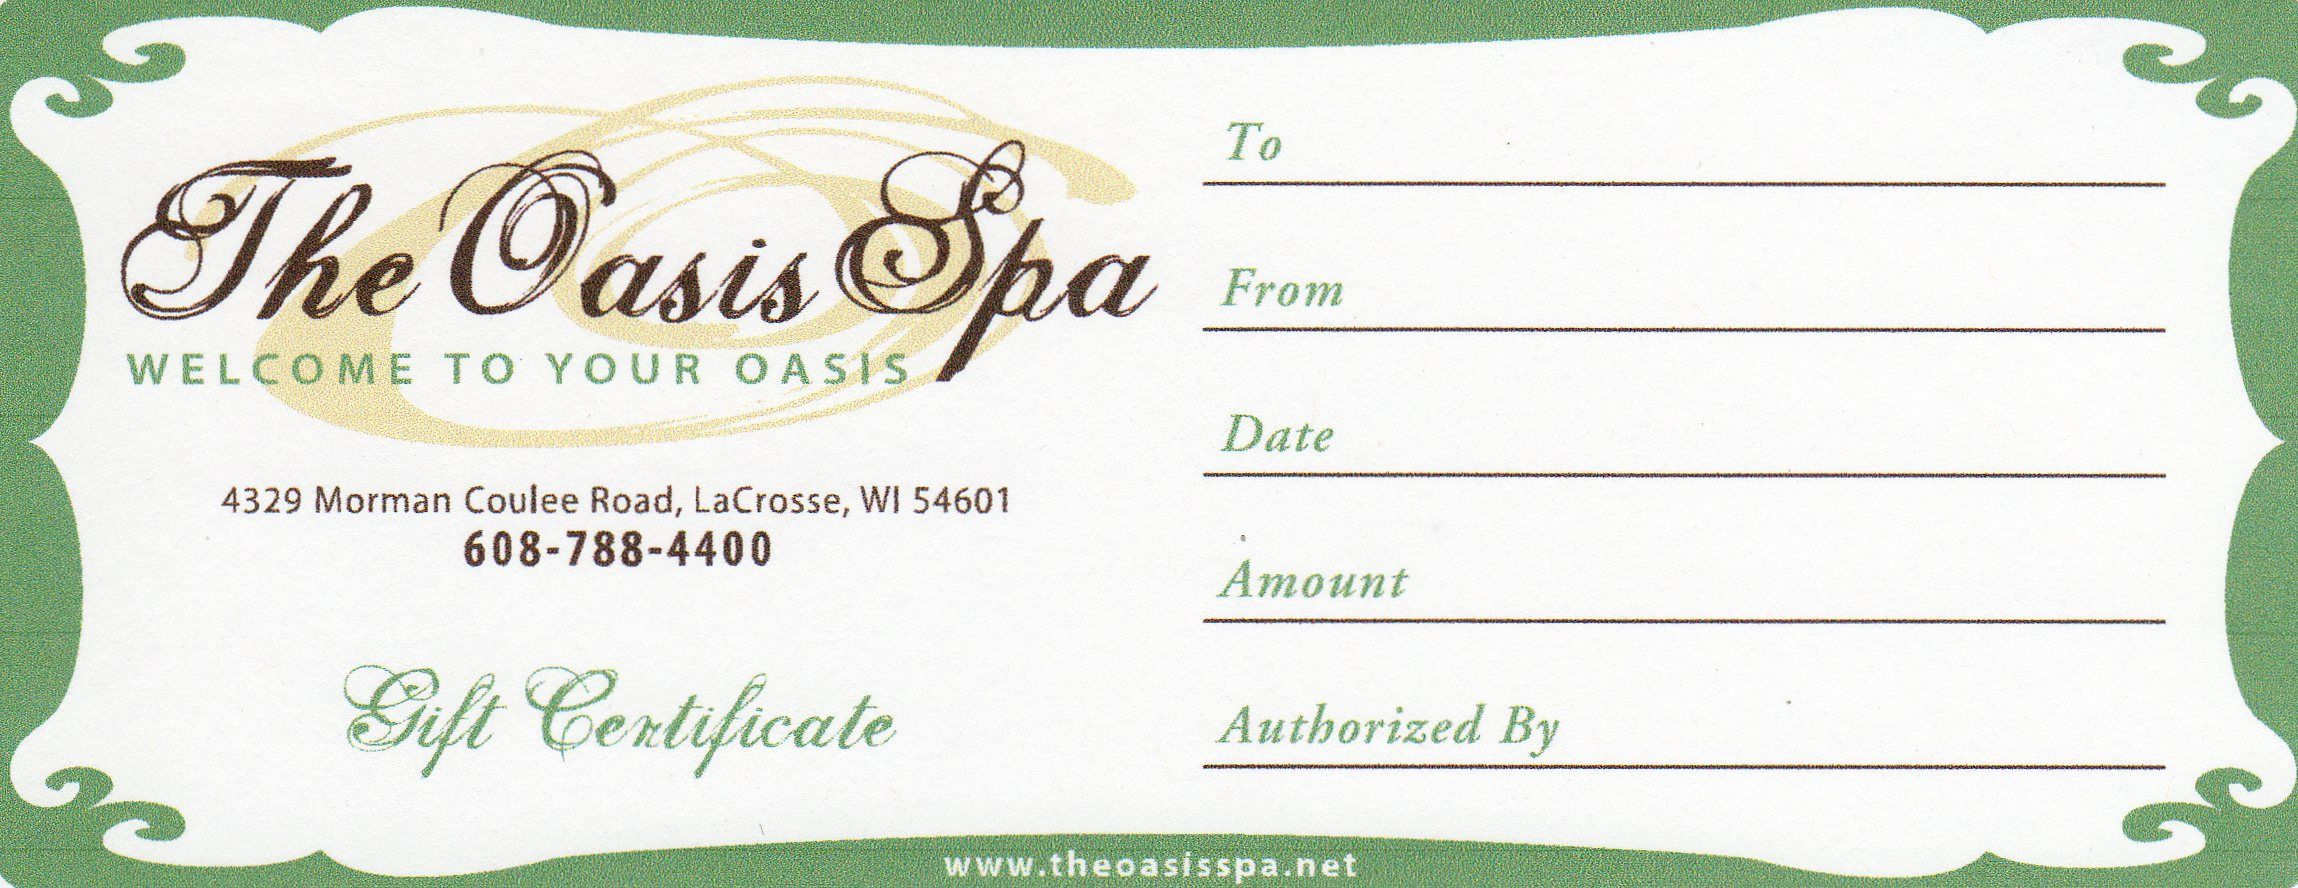 Gift Certificate Example Gift Certificate Template Spa Gift Certificate Certificate Templates Spa gift certificates templates free